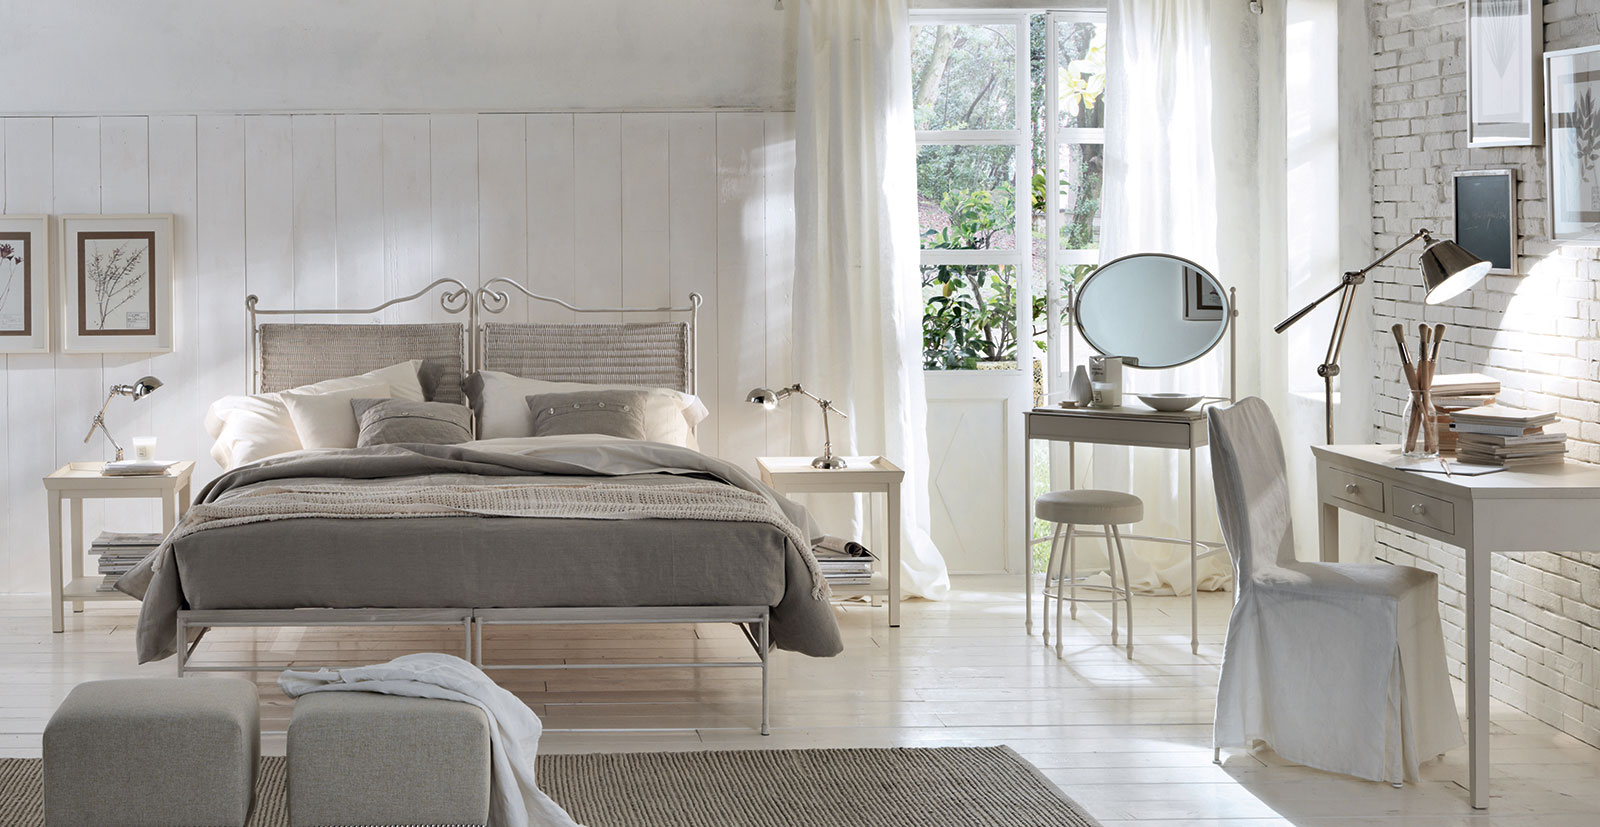 Letto matrimoniale country by91 regardsdefemmes - Camere da letto design ...